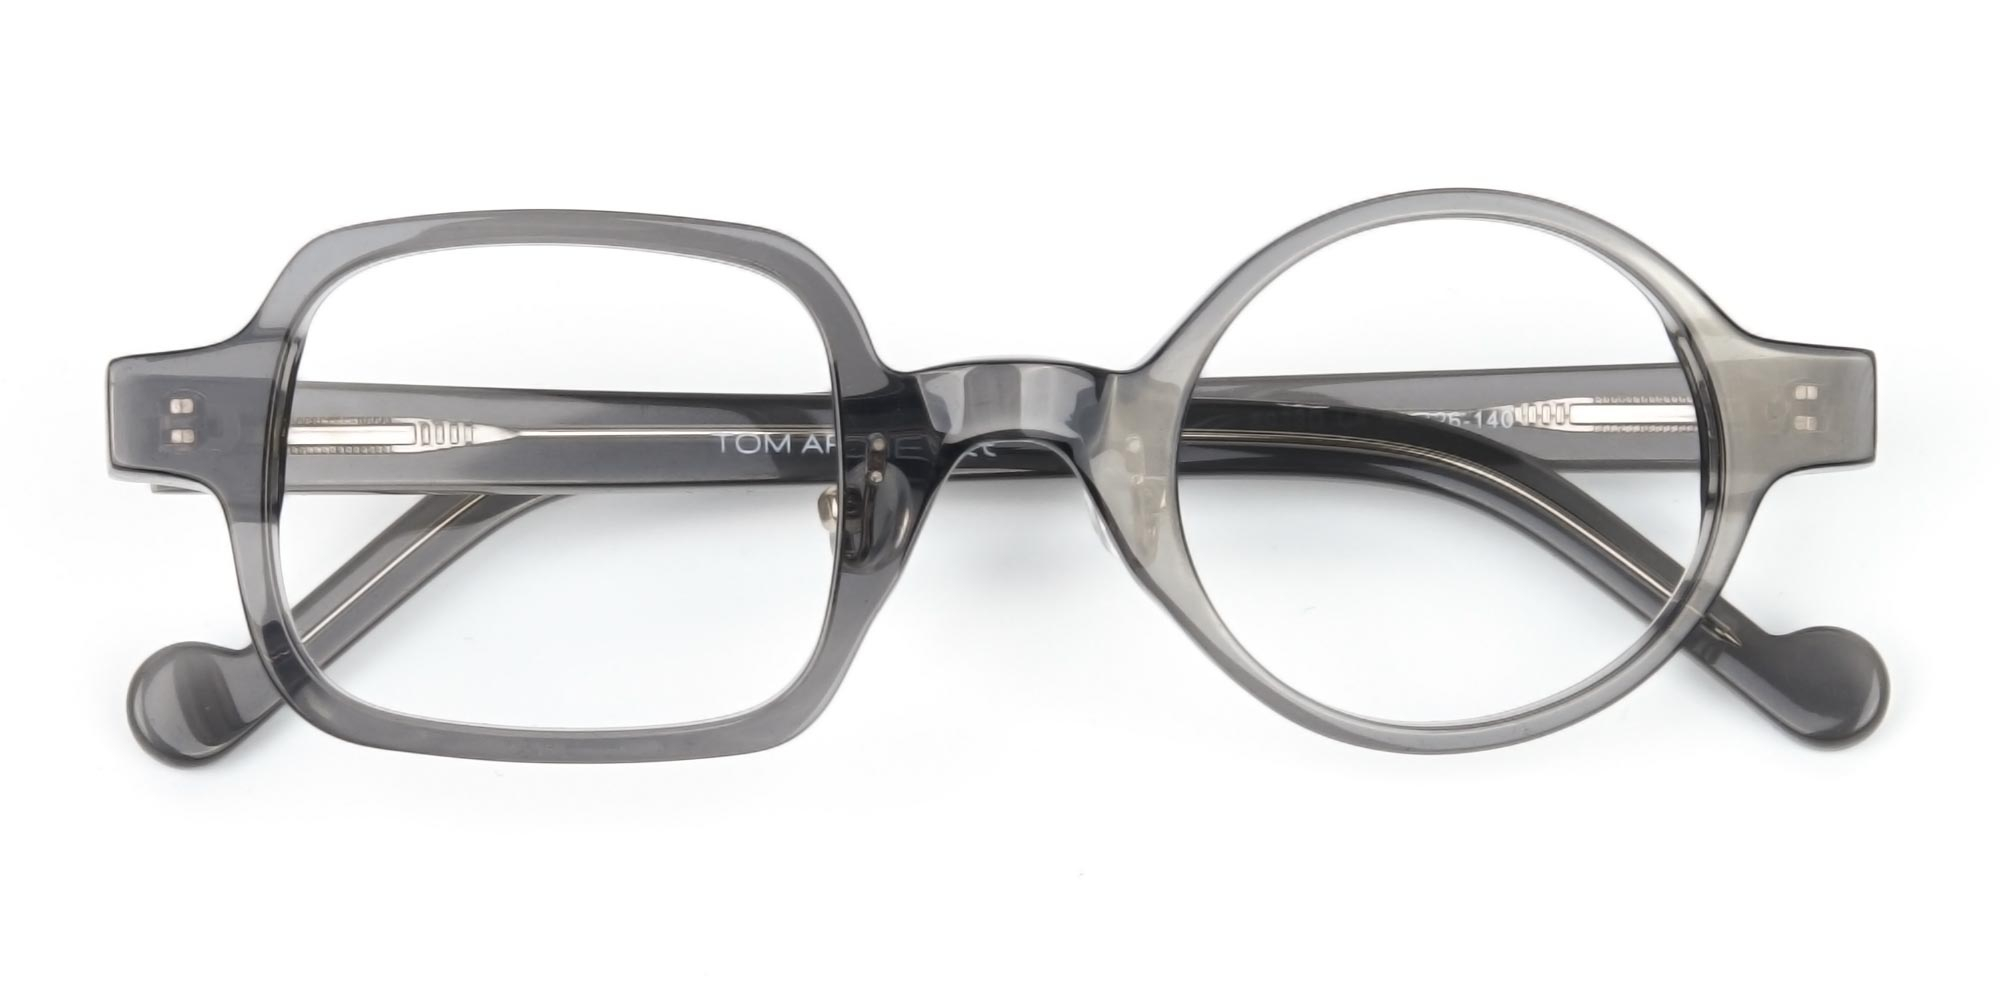 Stark Glasses with One Square & One Round Lens